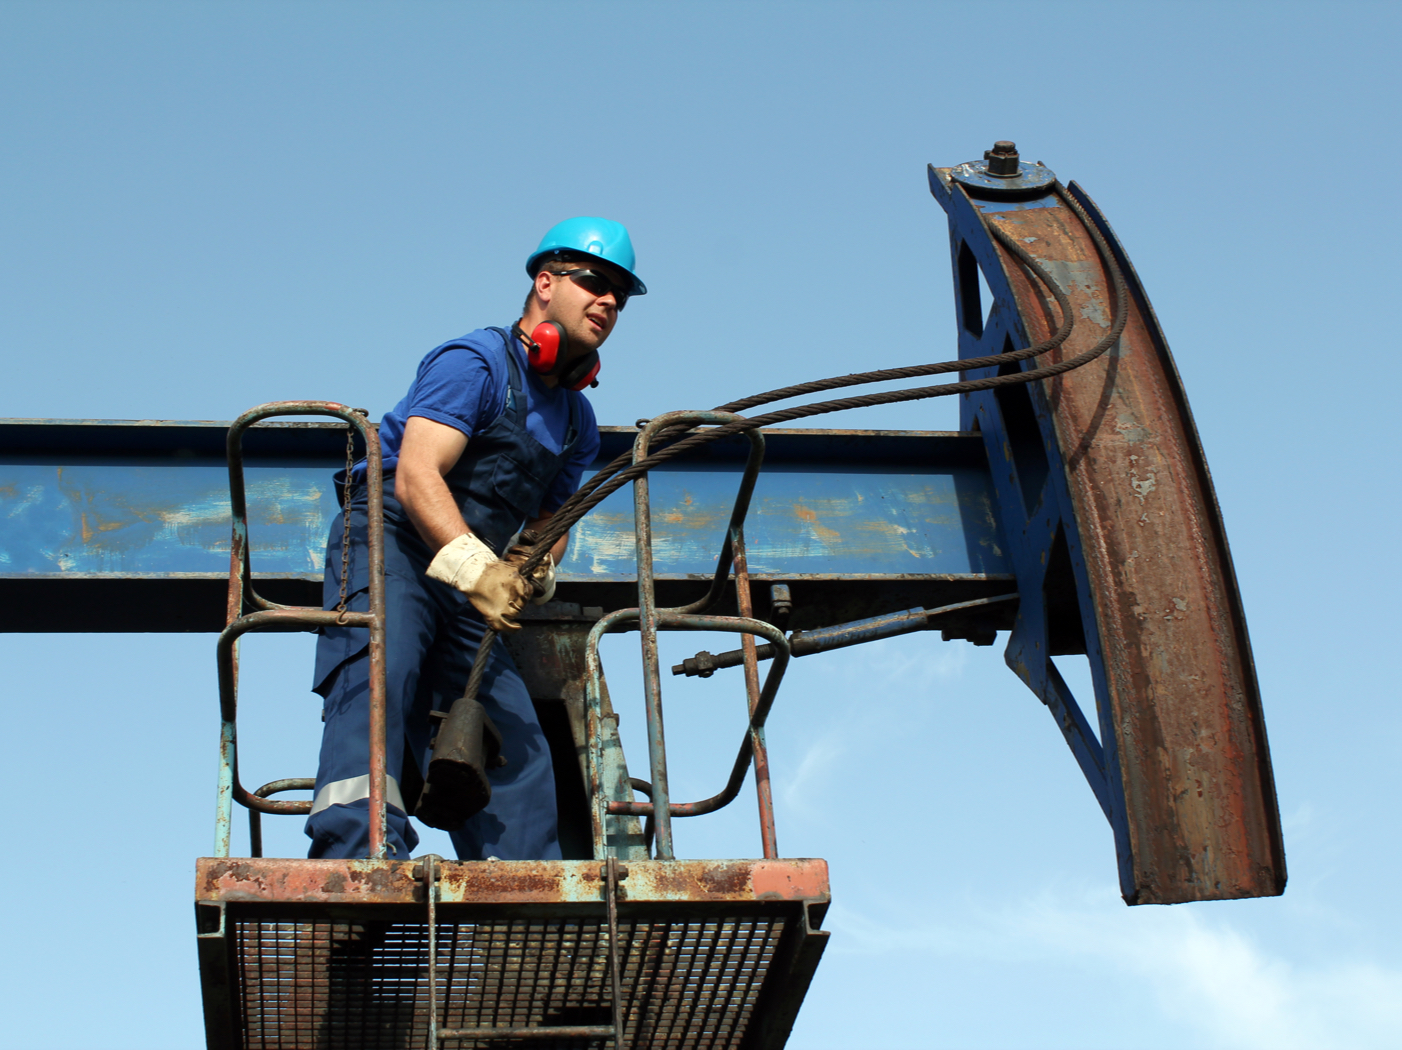 A worker making repairs on an oil pump jack